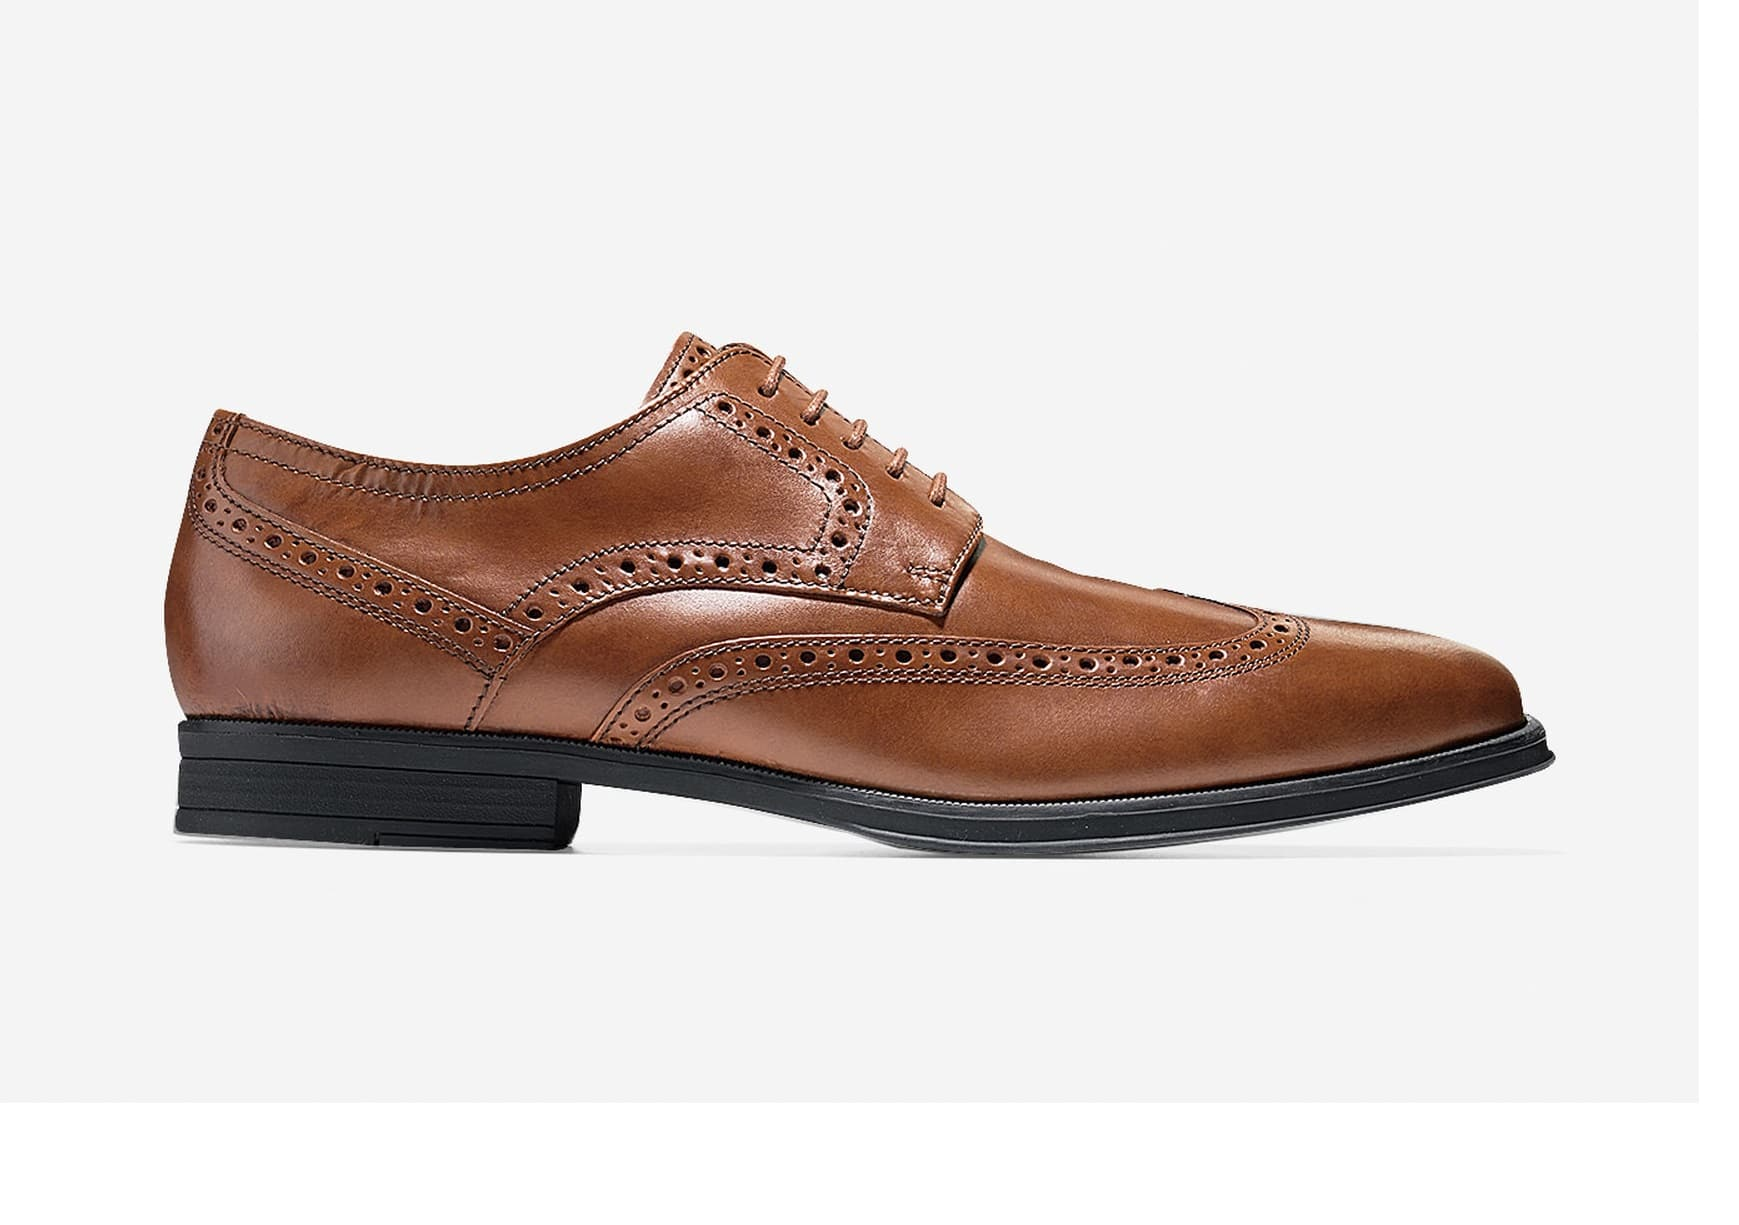 Cole Haan: Extra 40% Off Sale Items: Men's Montgomery Wingtip Oxford  $48 & More + Free S/H w/ Shoprunner